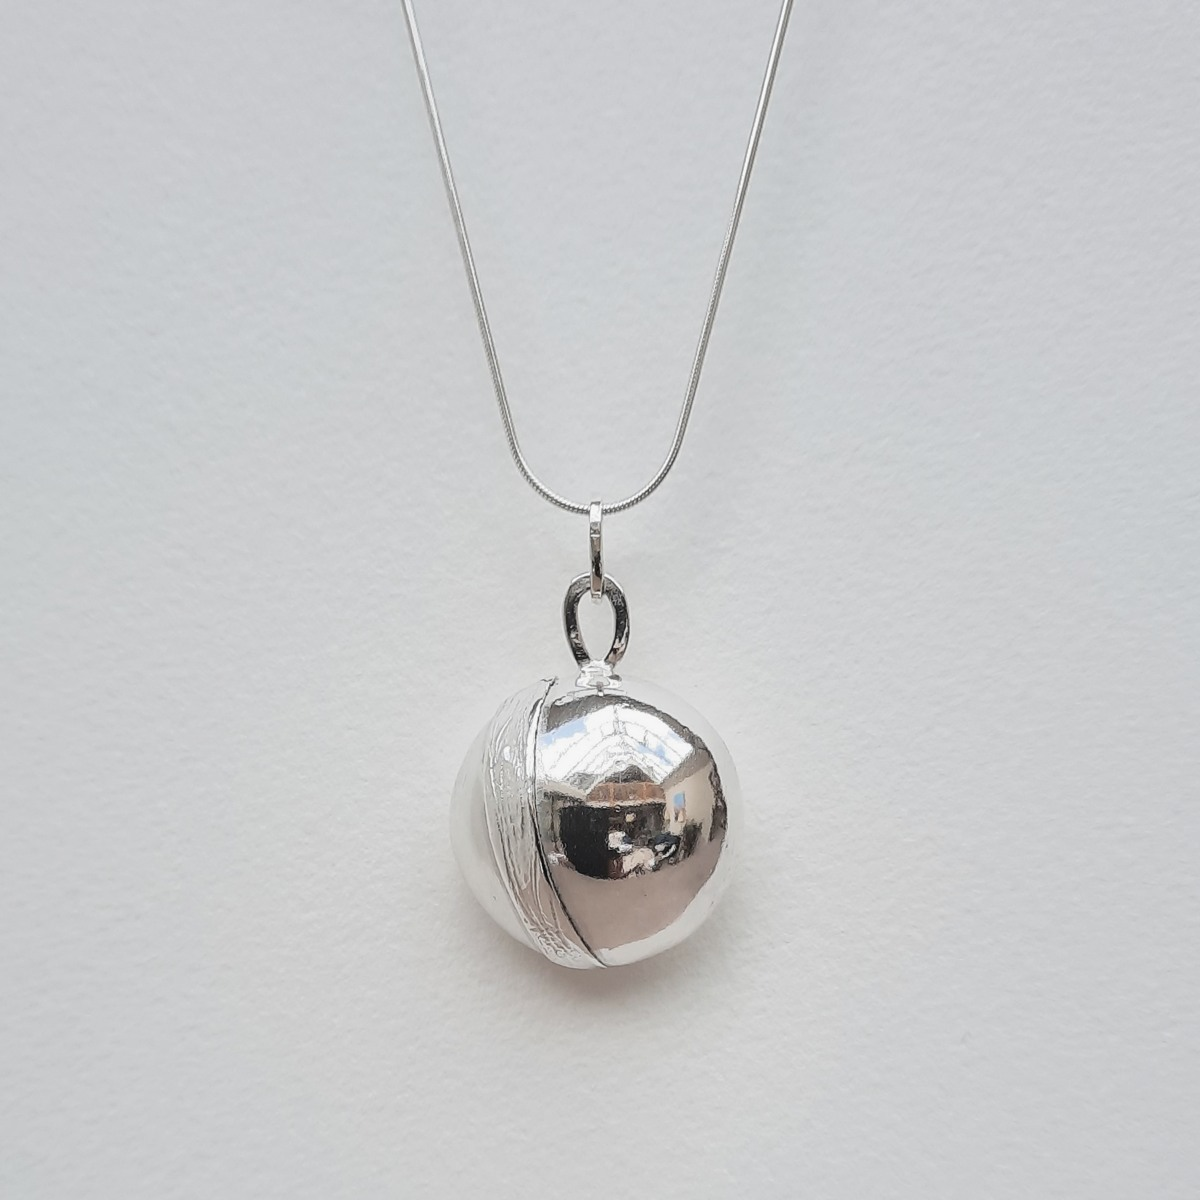 Banded Silver Fob Necklace